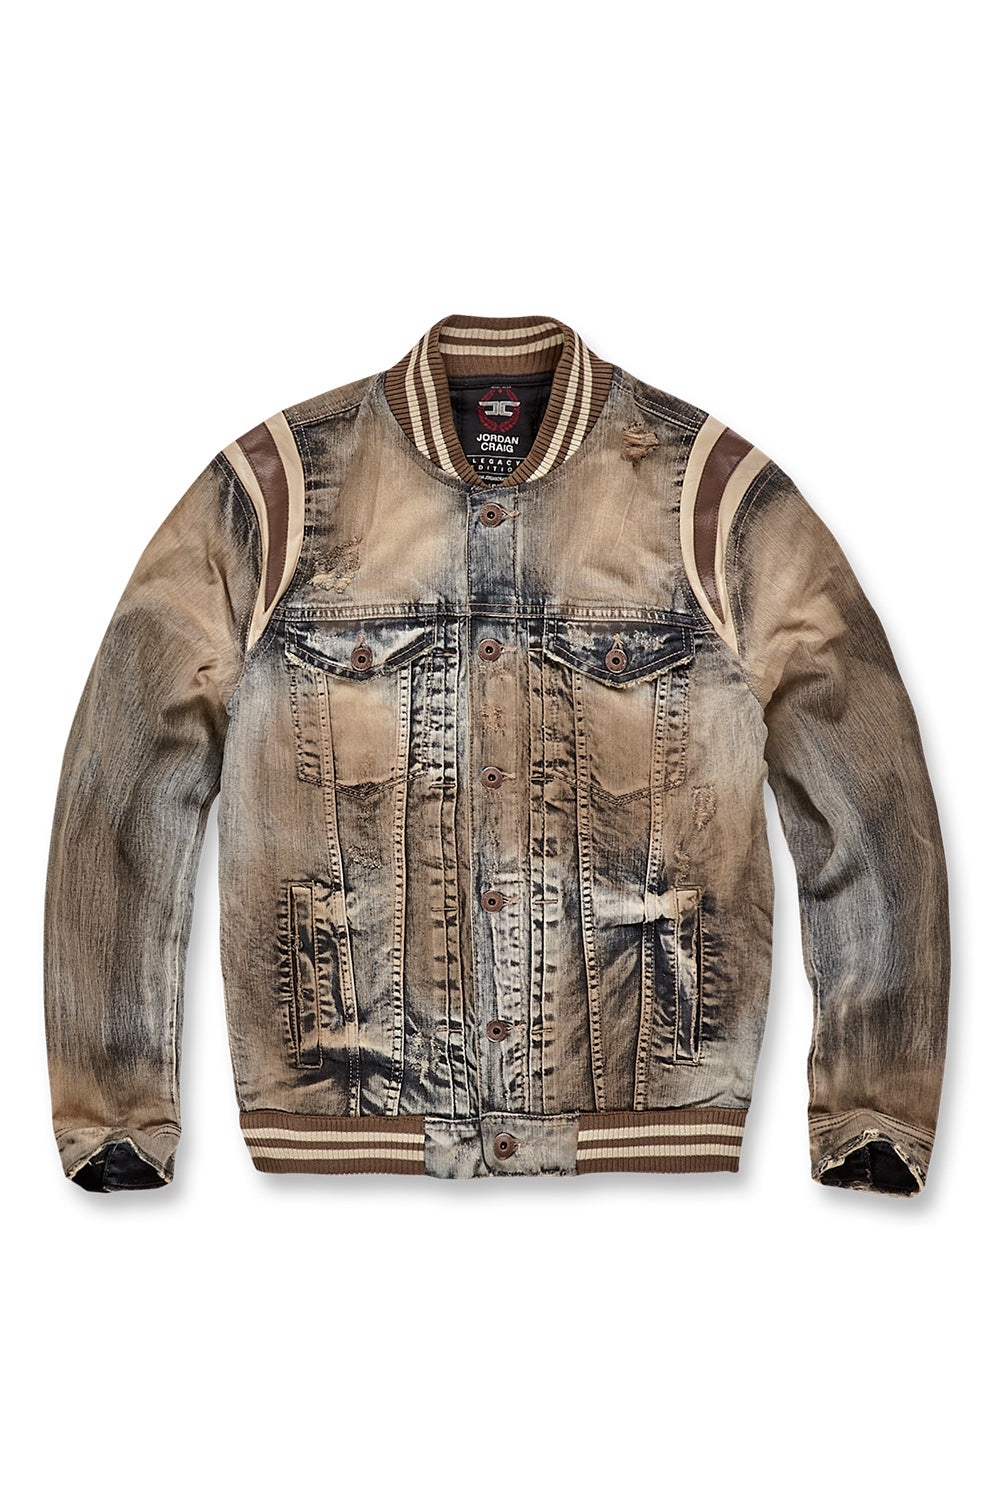 Jordan Craig - Barcelona Denim Varsity Jacket (Copper Wash)